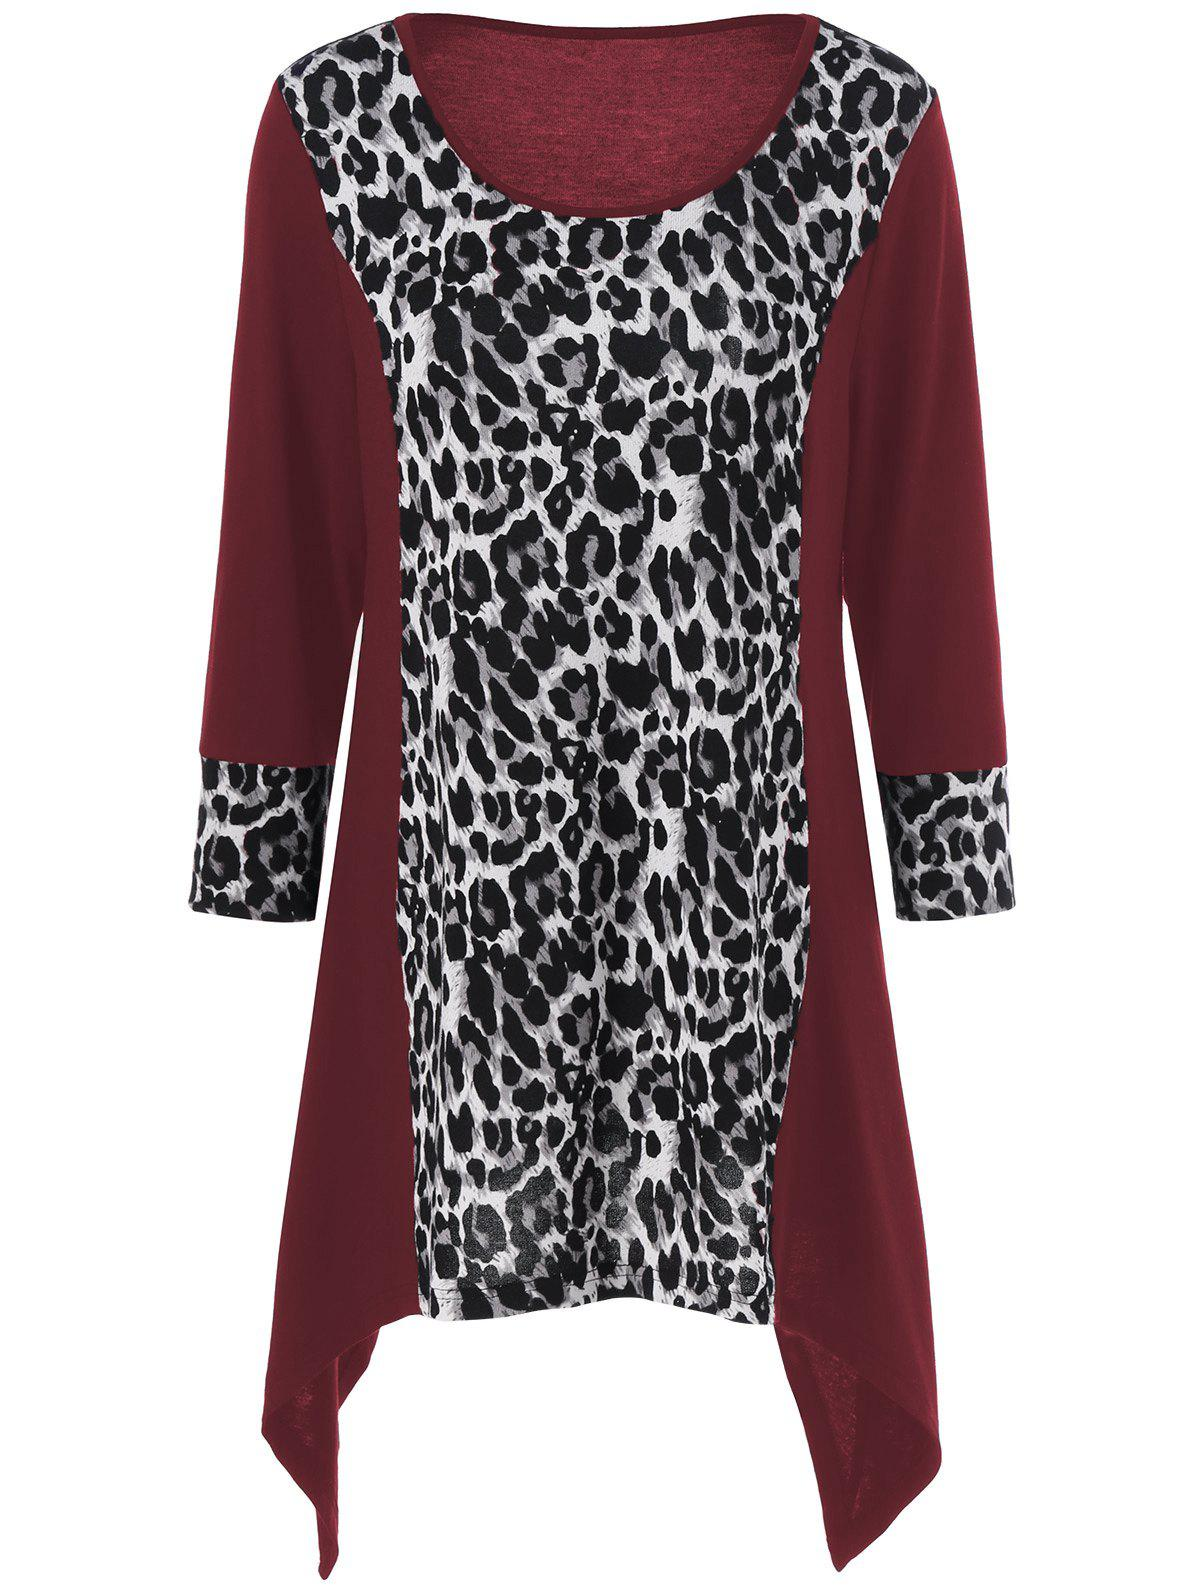 Leopard Print Plus Size Asymmetric T-ShirtWOMEN<br><br>Size: XL; Color: WINE RED; Material: Polyester,Spandex; Shirt Length: Long; Sleeve Length: Full; Collar: Scoop Neck; Style: Fashion; Season: Fall,Spring; Pattern Type: Leopard; Weight: 0.320kg; Package Contents: 1 x T-Shirt;